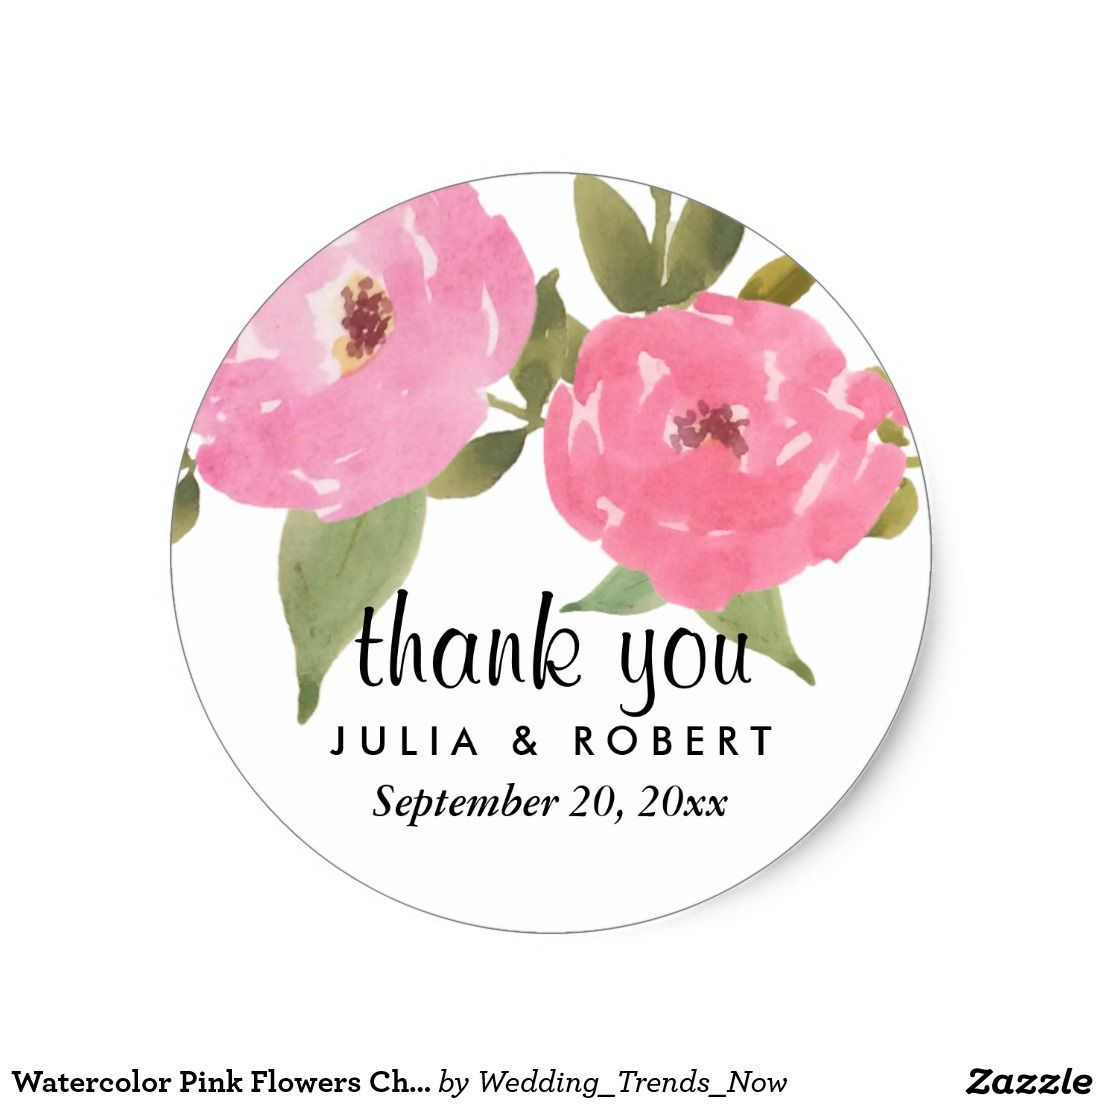 Watercolor pink flowers chic wedding thank you classic round sticker